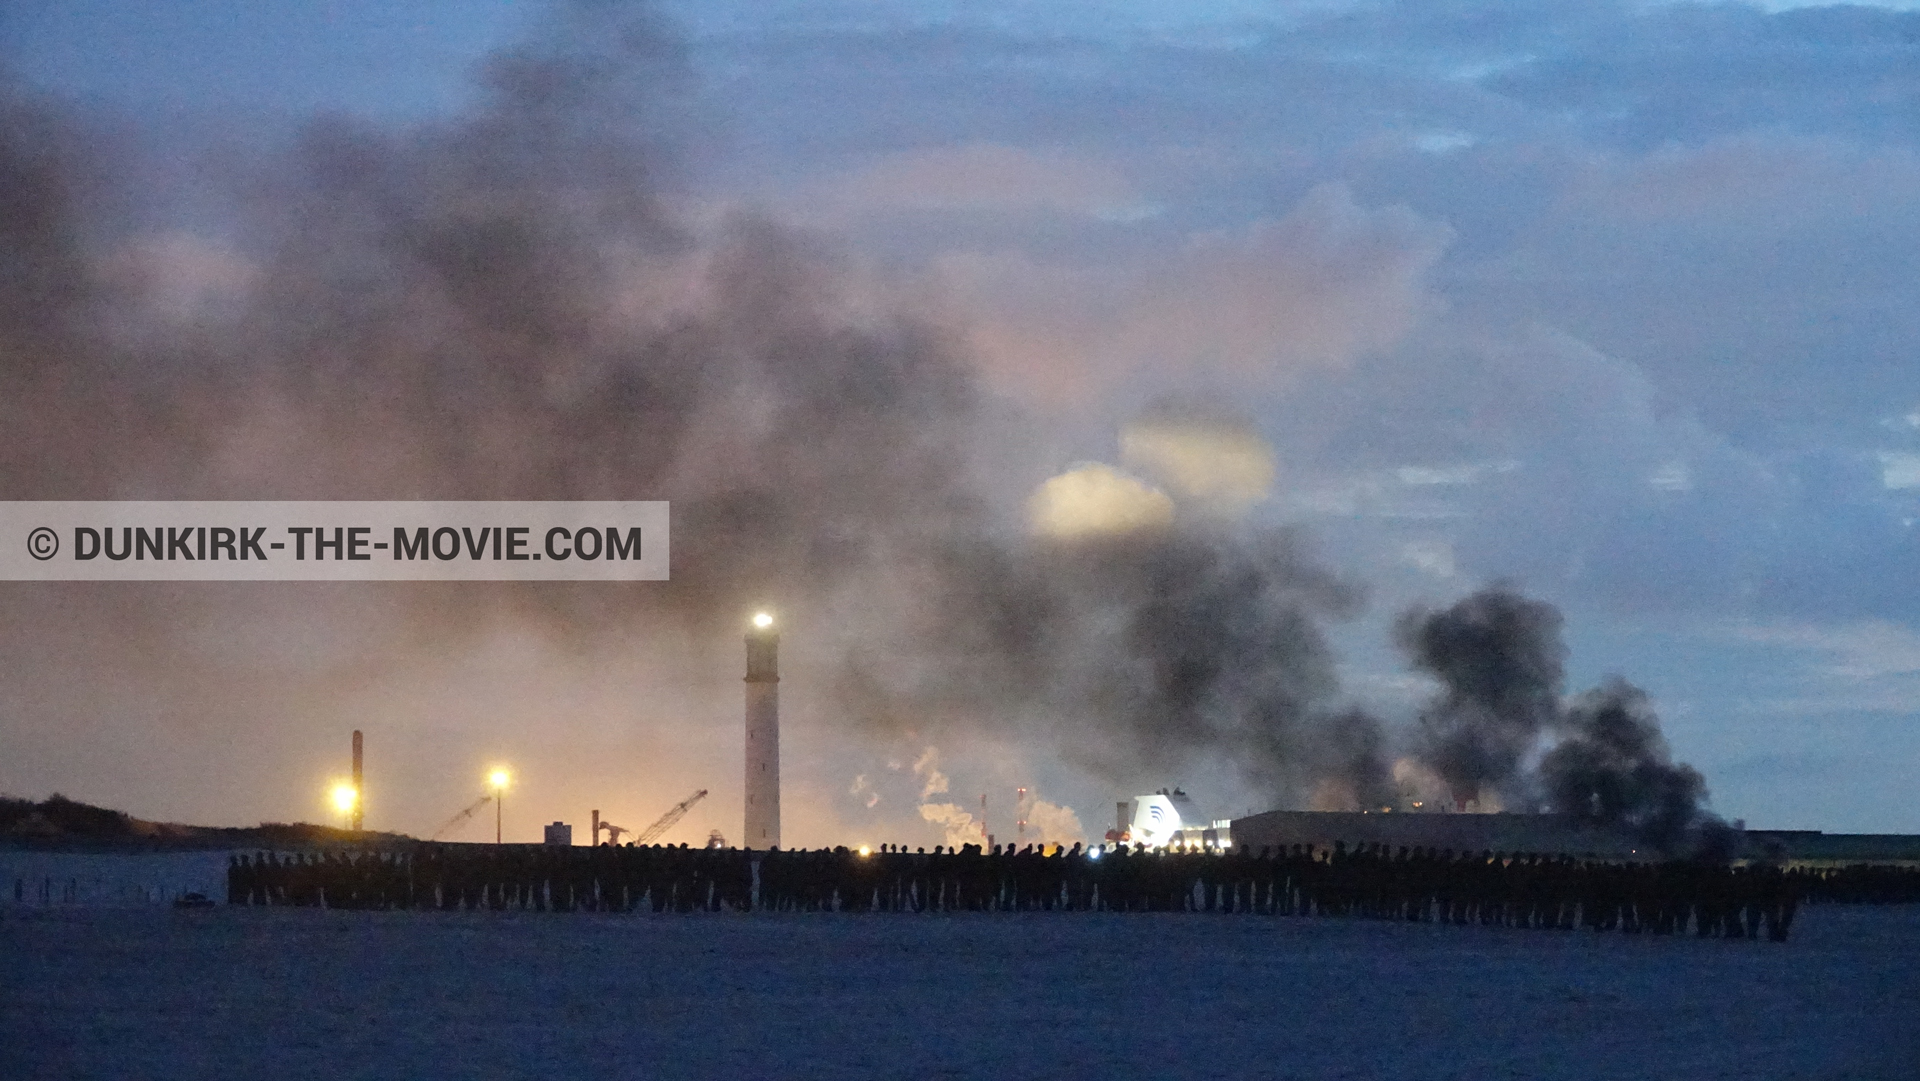 Picture with blue sky, orange sky, black smoke, Dunkirk lighthouse, beach,  from behind the scene of the Dunkirk movie by Nolan